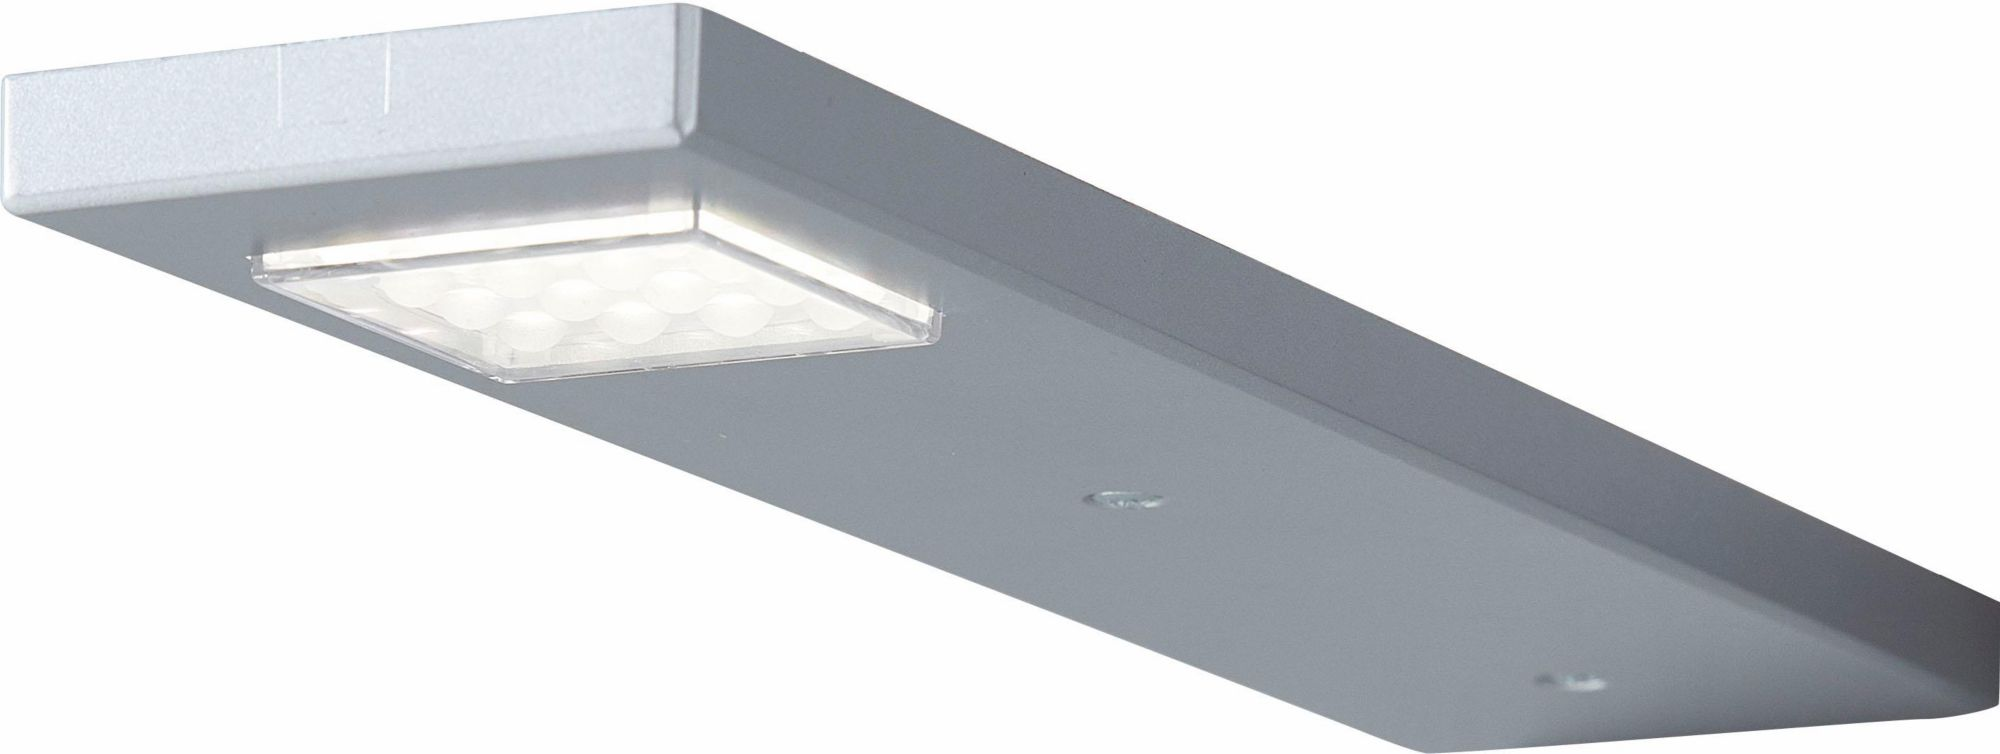 GERMANIA Germania LED-Beleuchtung »Design2«